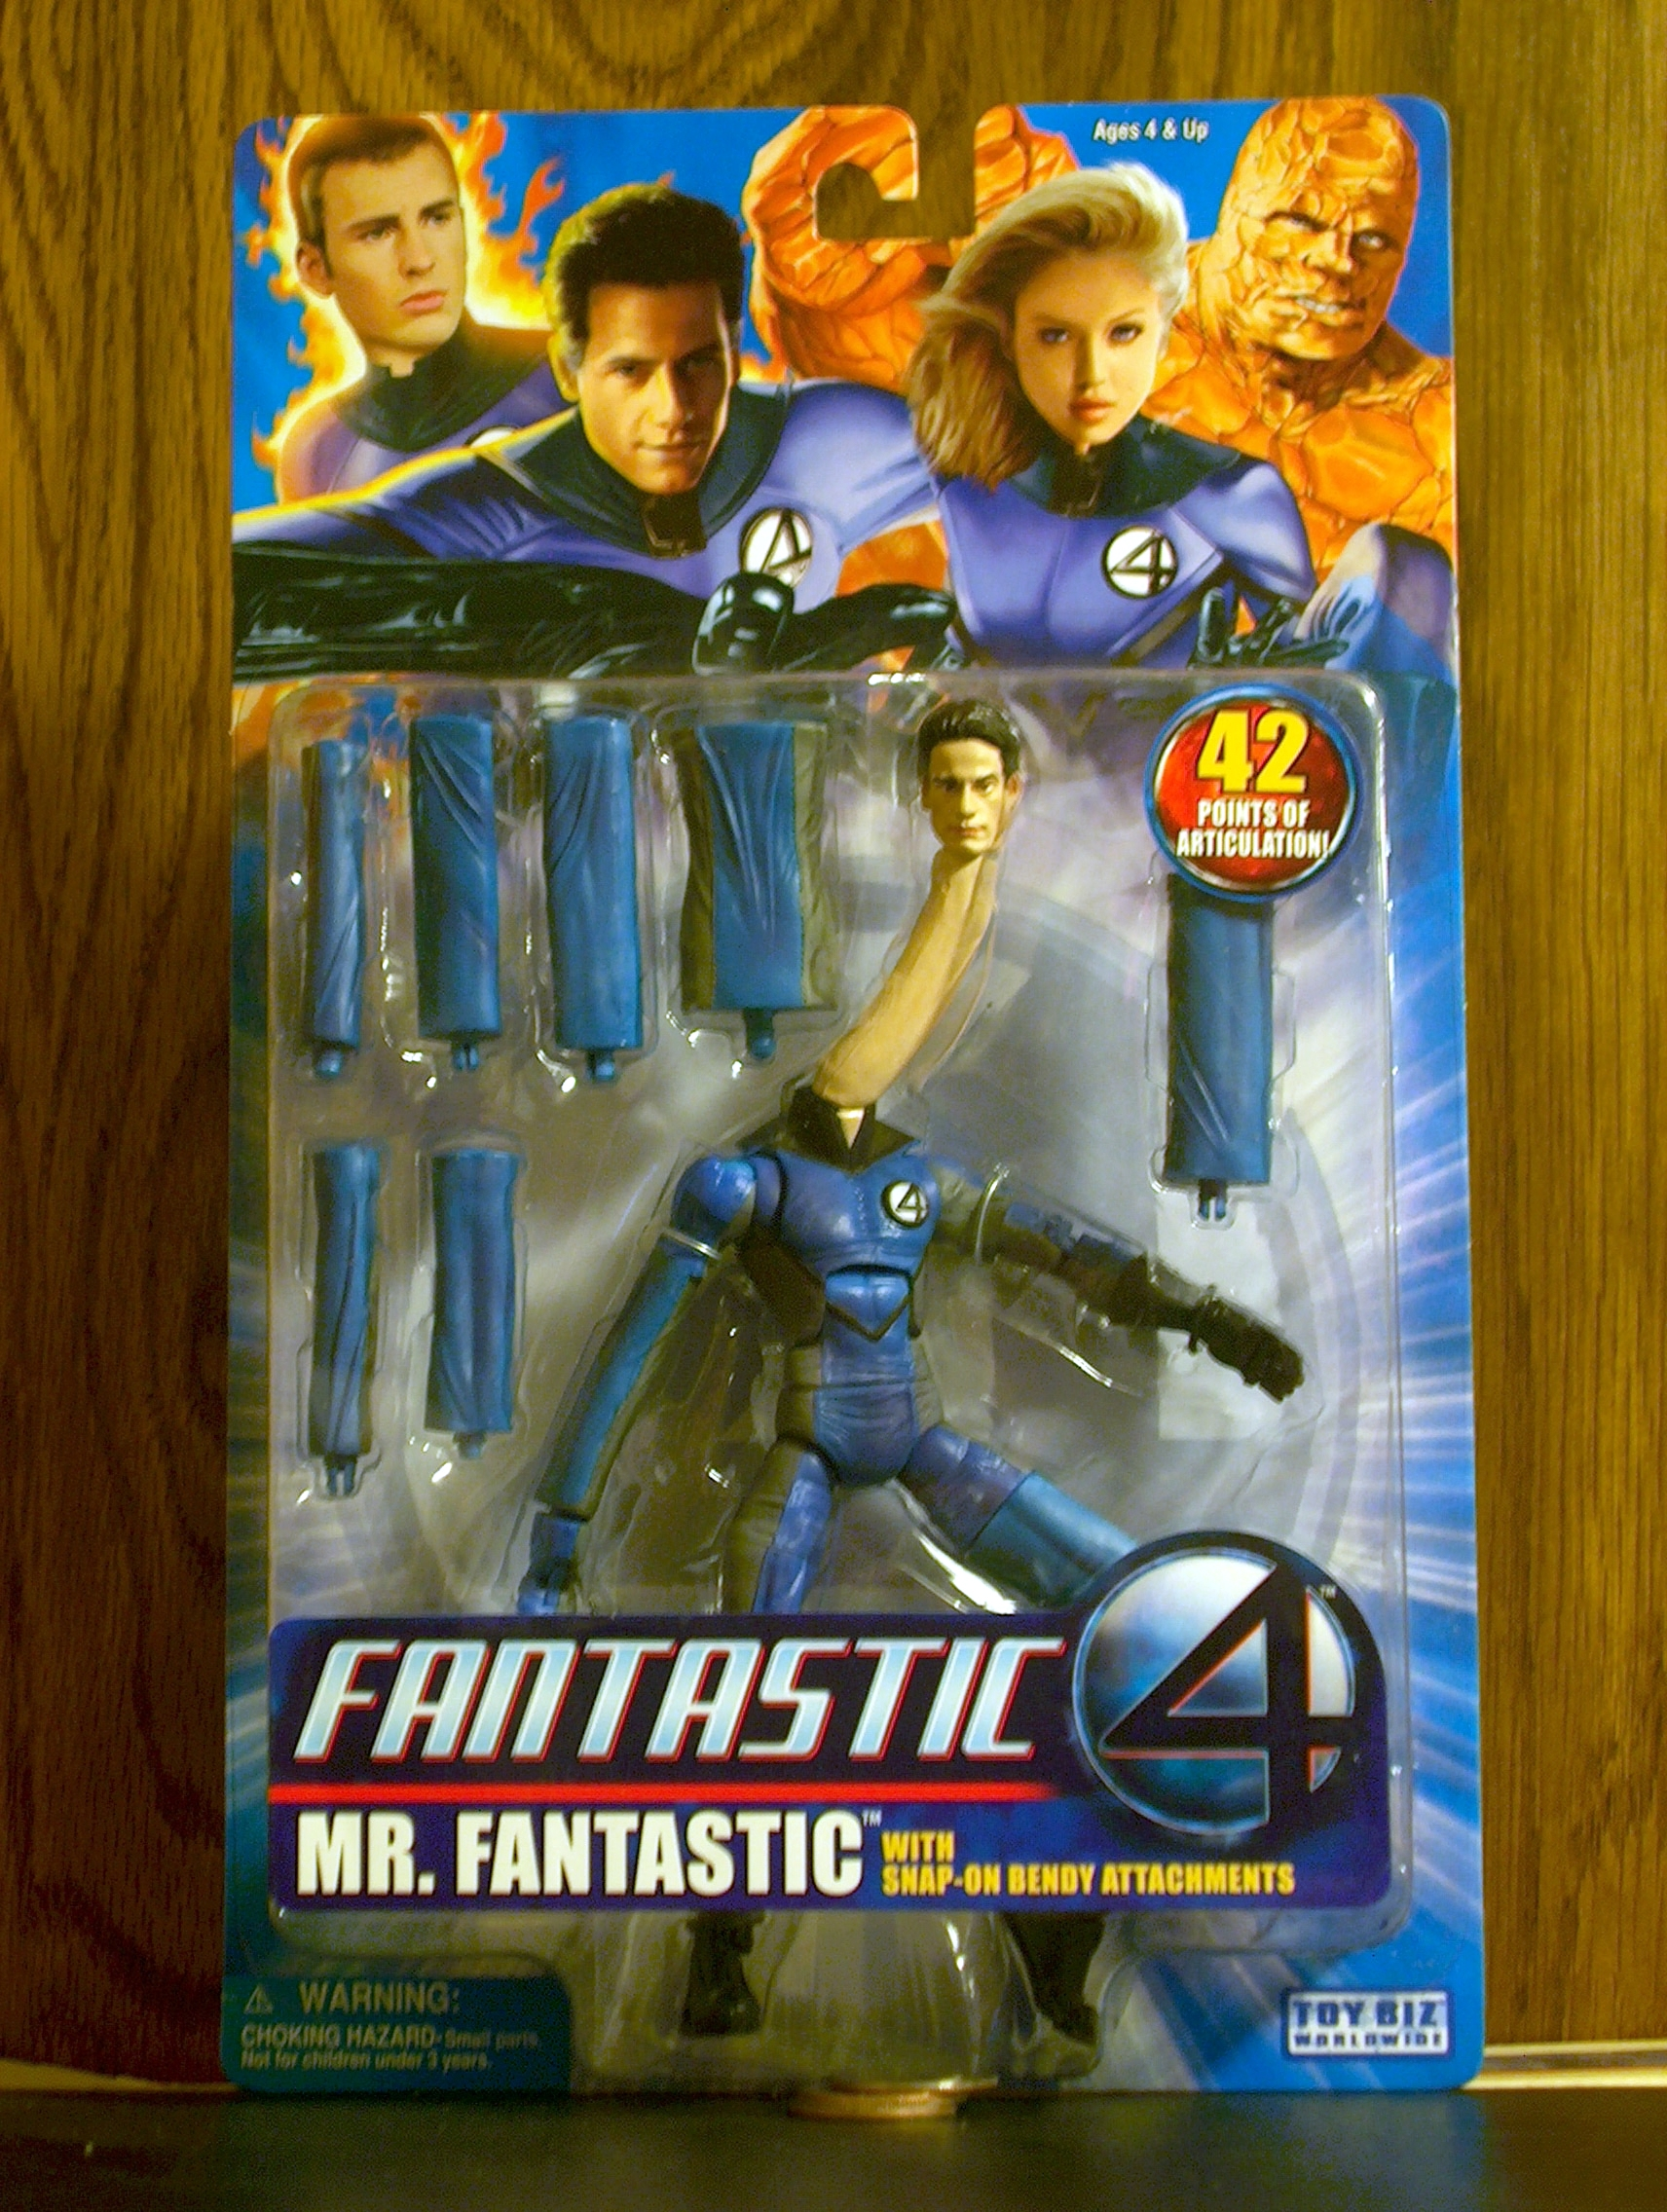 Fantastic Four (Movie) Mr. Fantastic (Bendy Attachments)